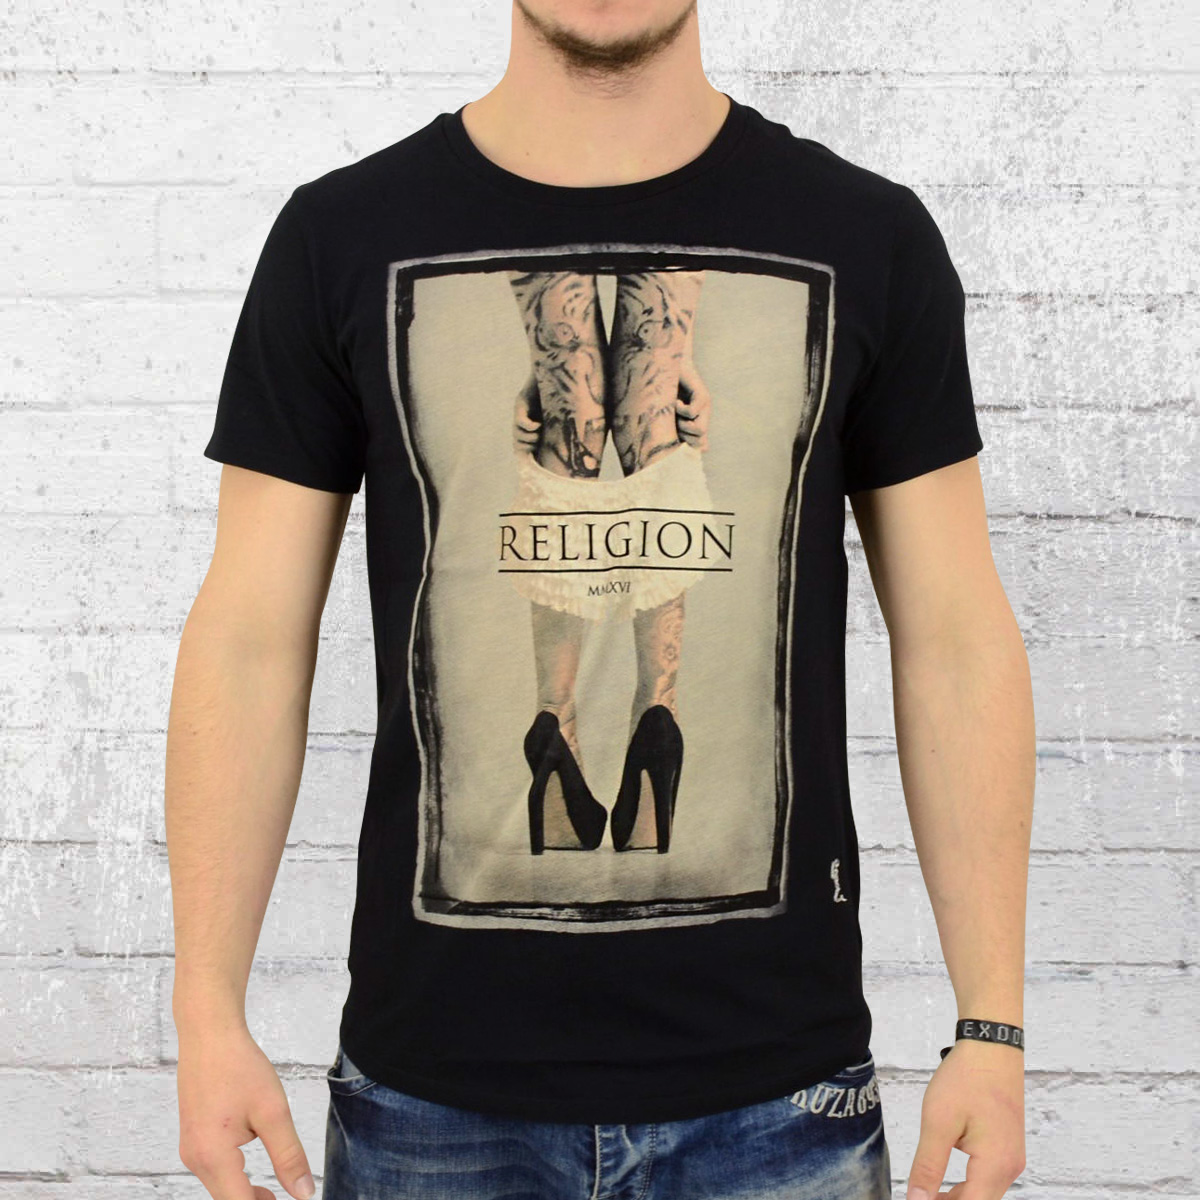 order now religion clothing t shirt mens pull them down black. Black Bedroom Furniture Sets. Home Design Ideas